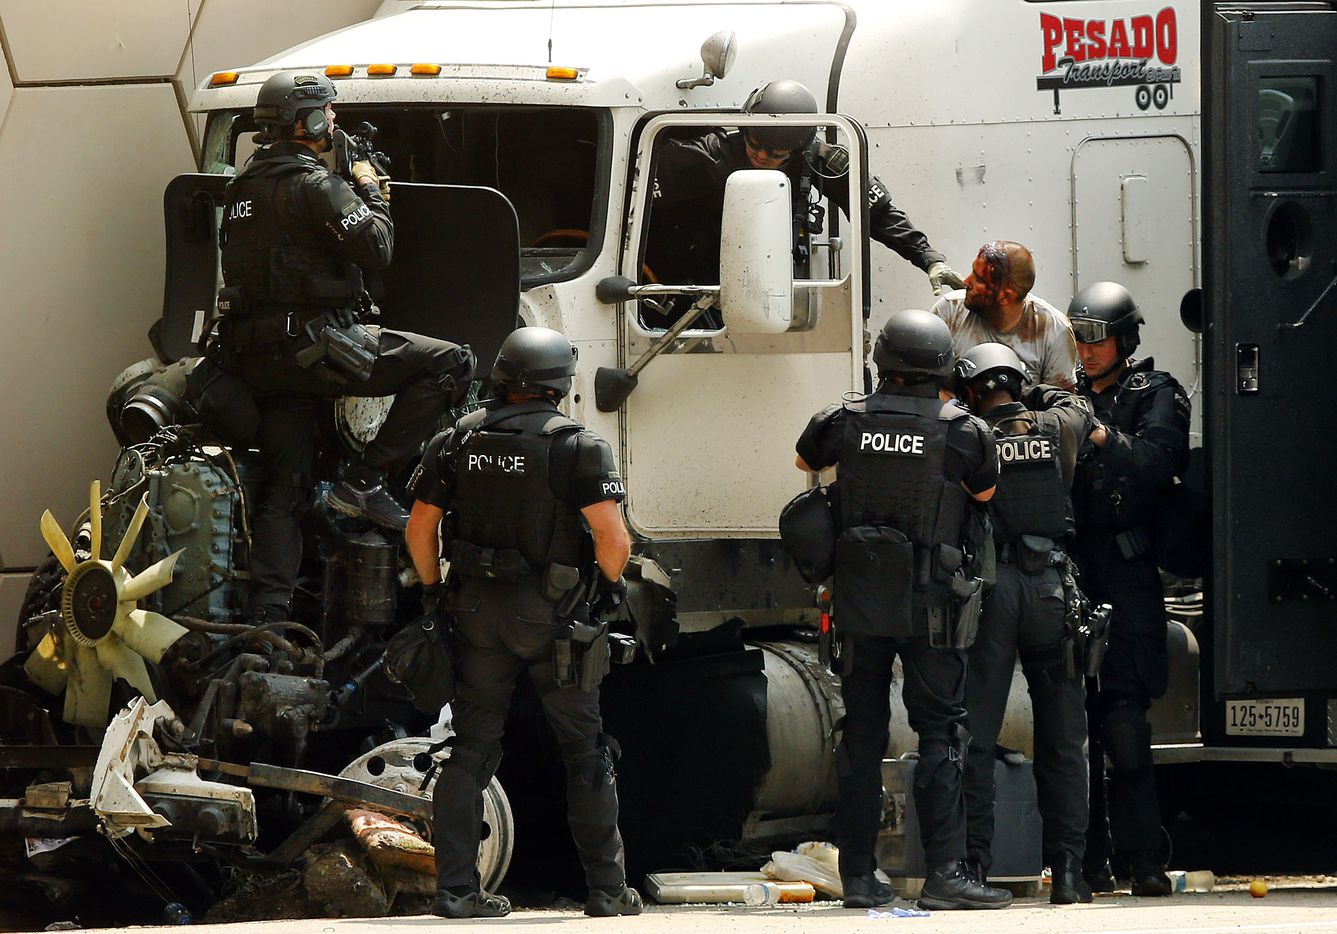 SWAT team members pull a man from a wrecked semi truck after it crashed following a high speed chase on eastbound Interstate 30 at Cooper St. in Arlington  Friday, June 9, 2017. The standoff lasted until police talked the injured man into coming out. (Tom Fox/The Dallas Morning News)